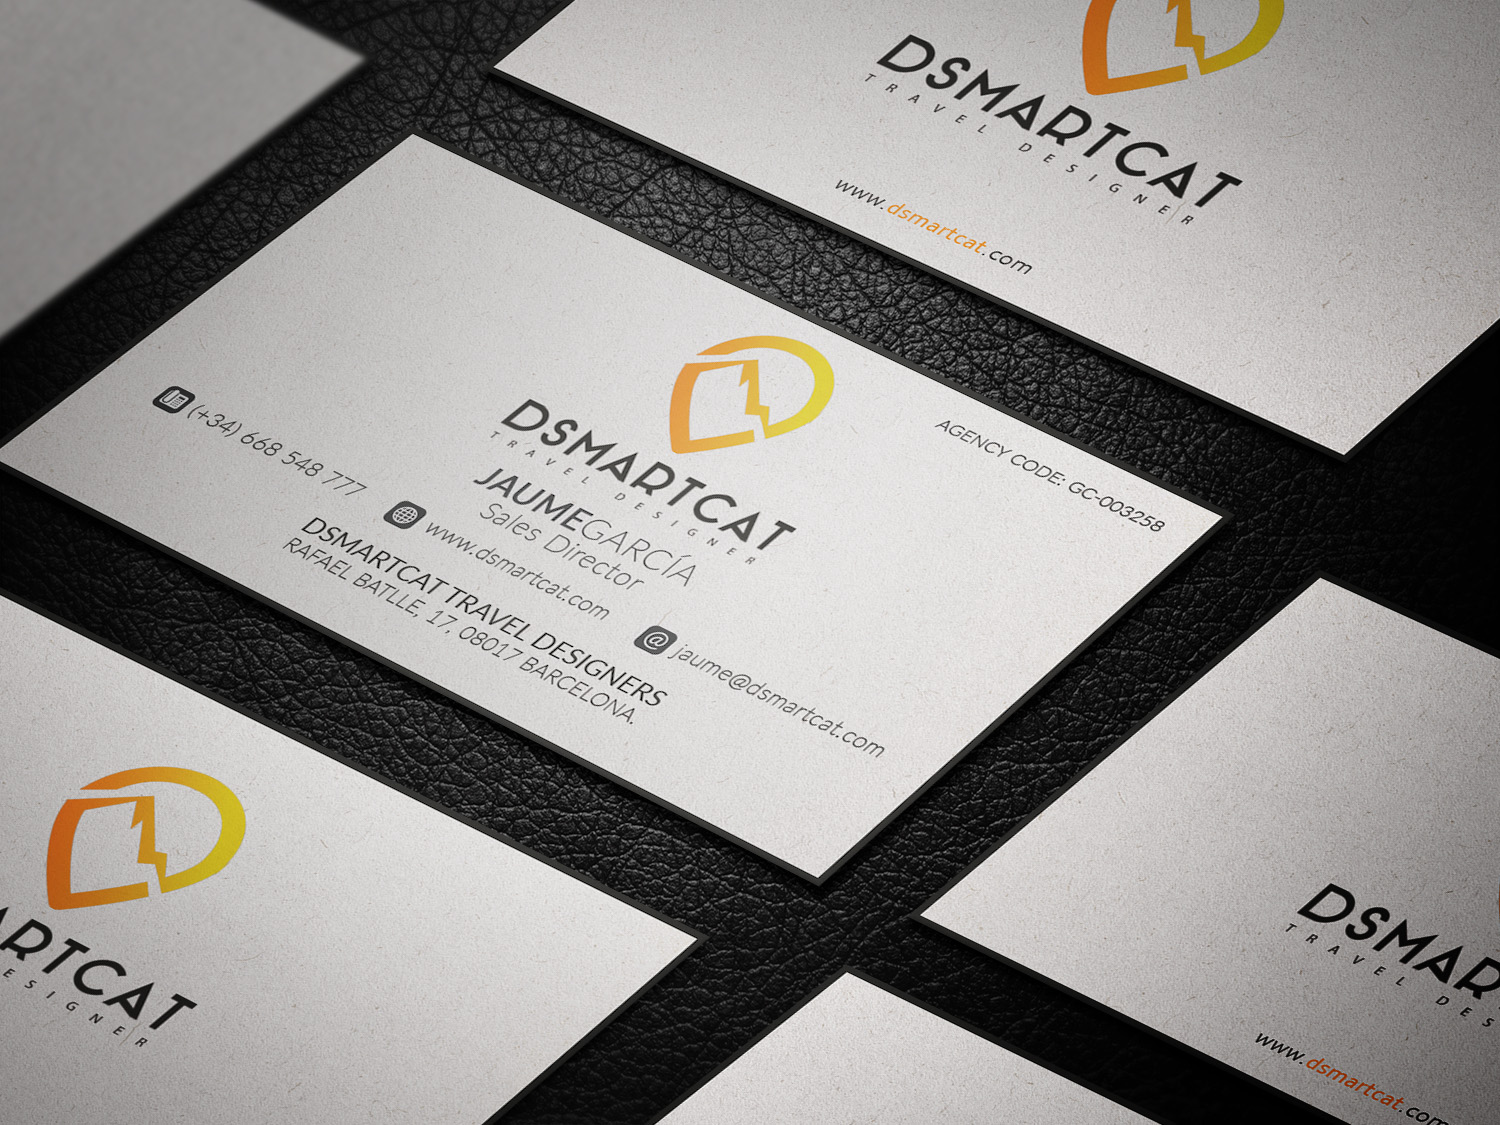 Modern playful tourism business card design for dsmartcat by business card design by virtual designs for dsmartcat design 11748841 reheart Image collections